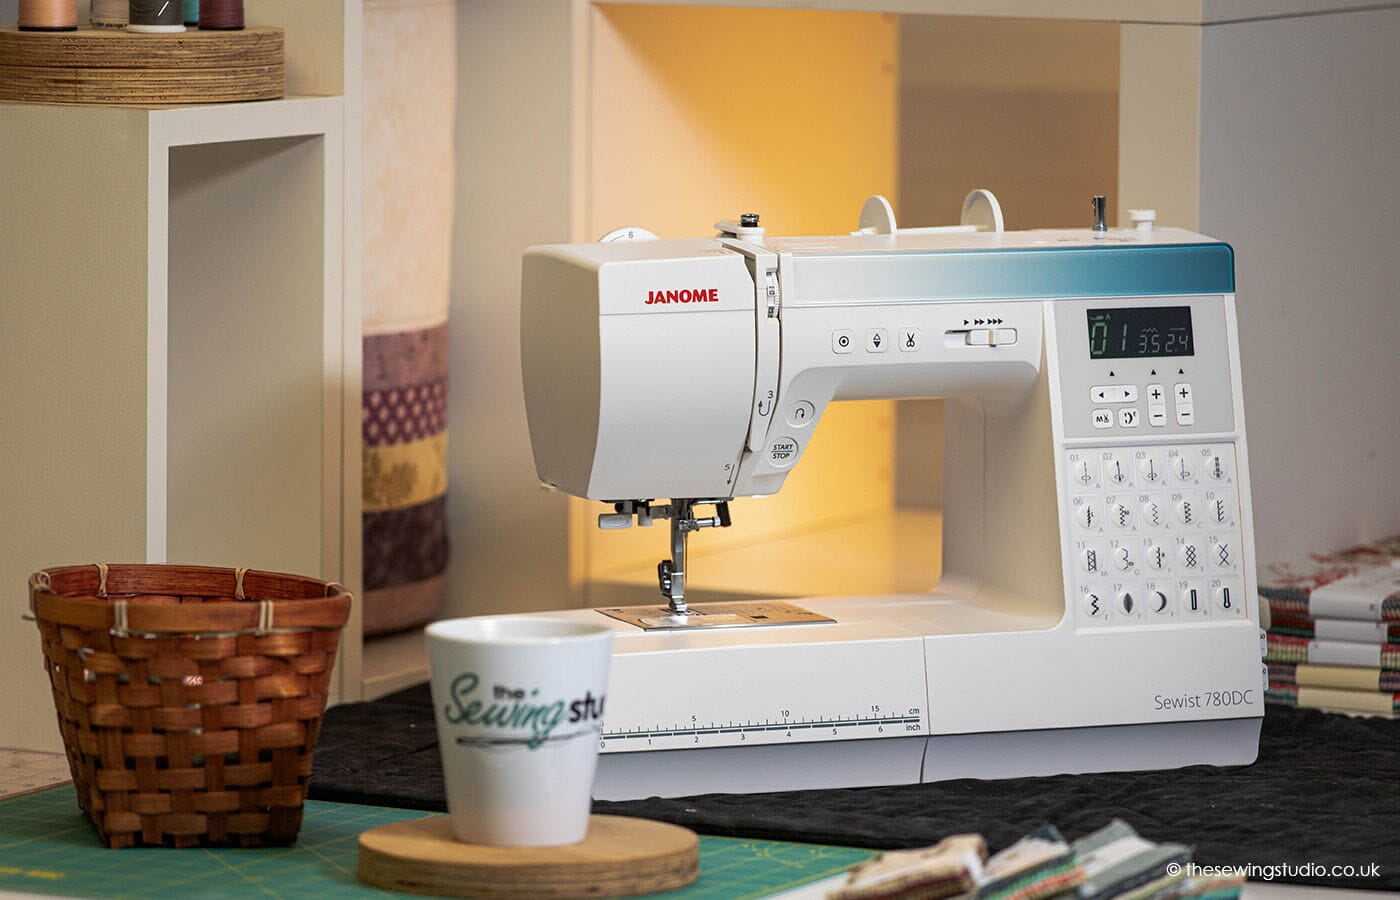 Janome 780DC Sewing Machine in a Sewing Room